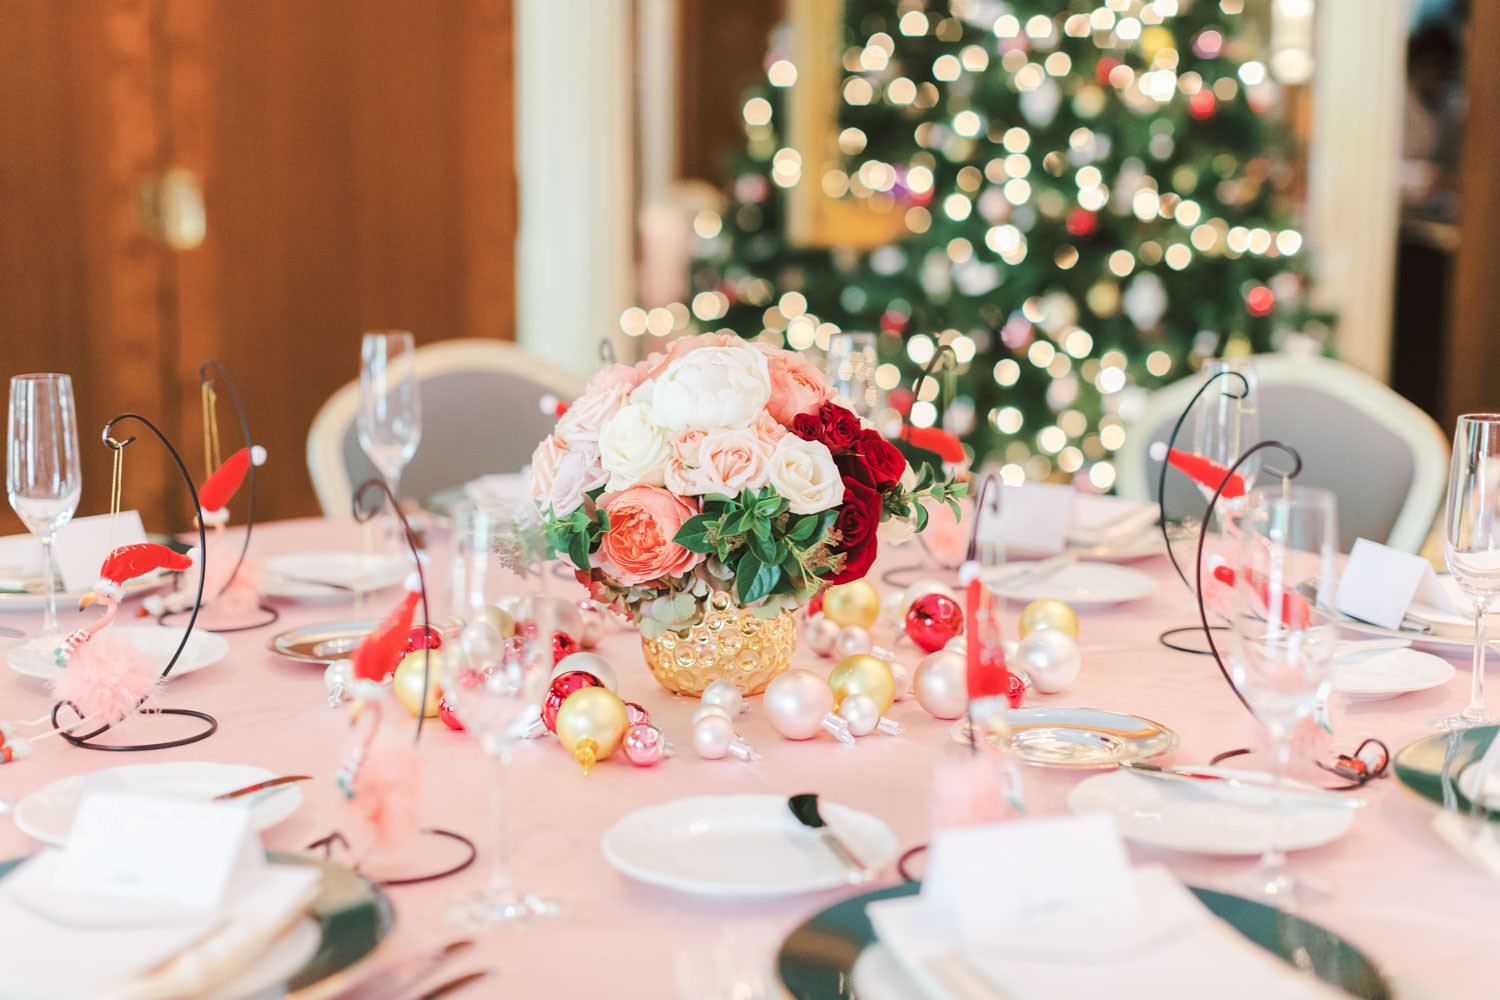 Chic Beverly Hills Hotel Bridal Shower table with pink linens and pops of ivory and red in Los Angeles during Christmas decorations, Cavin Elizabeth Photography